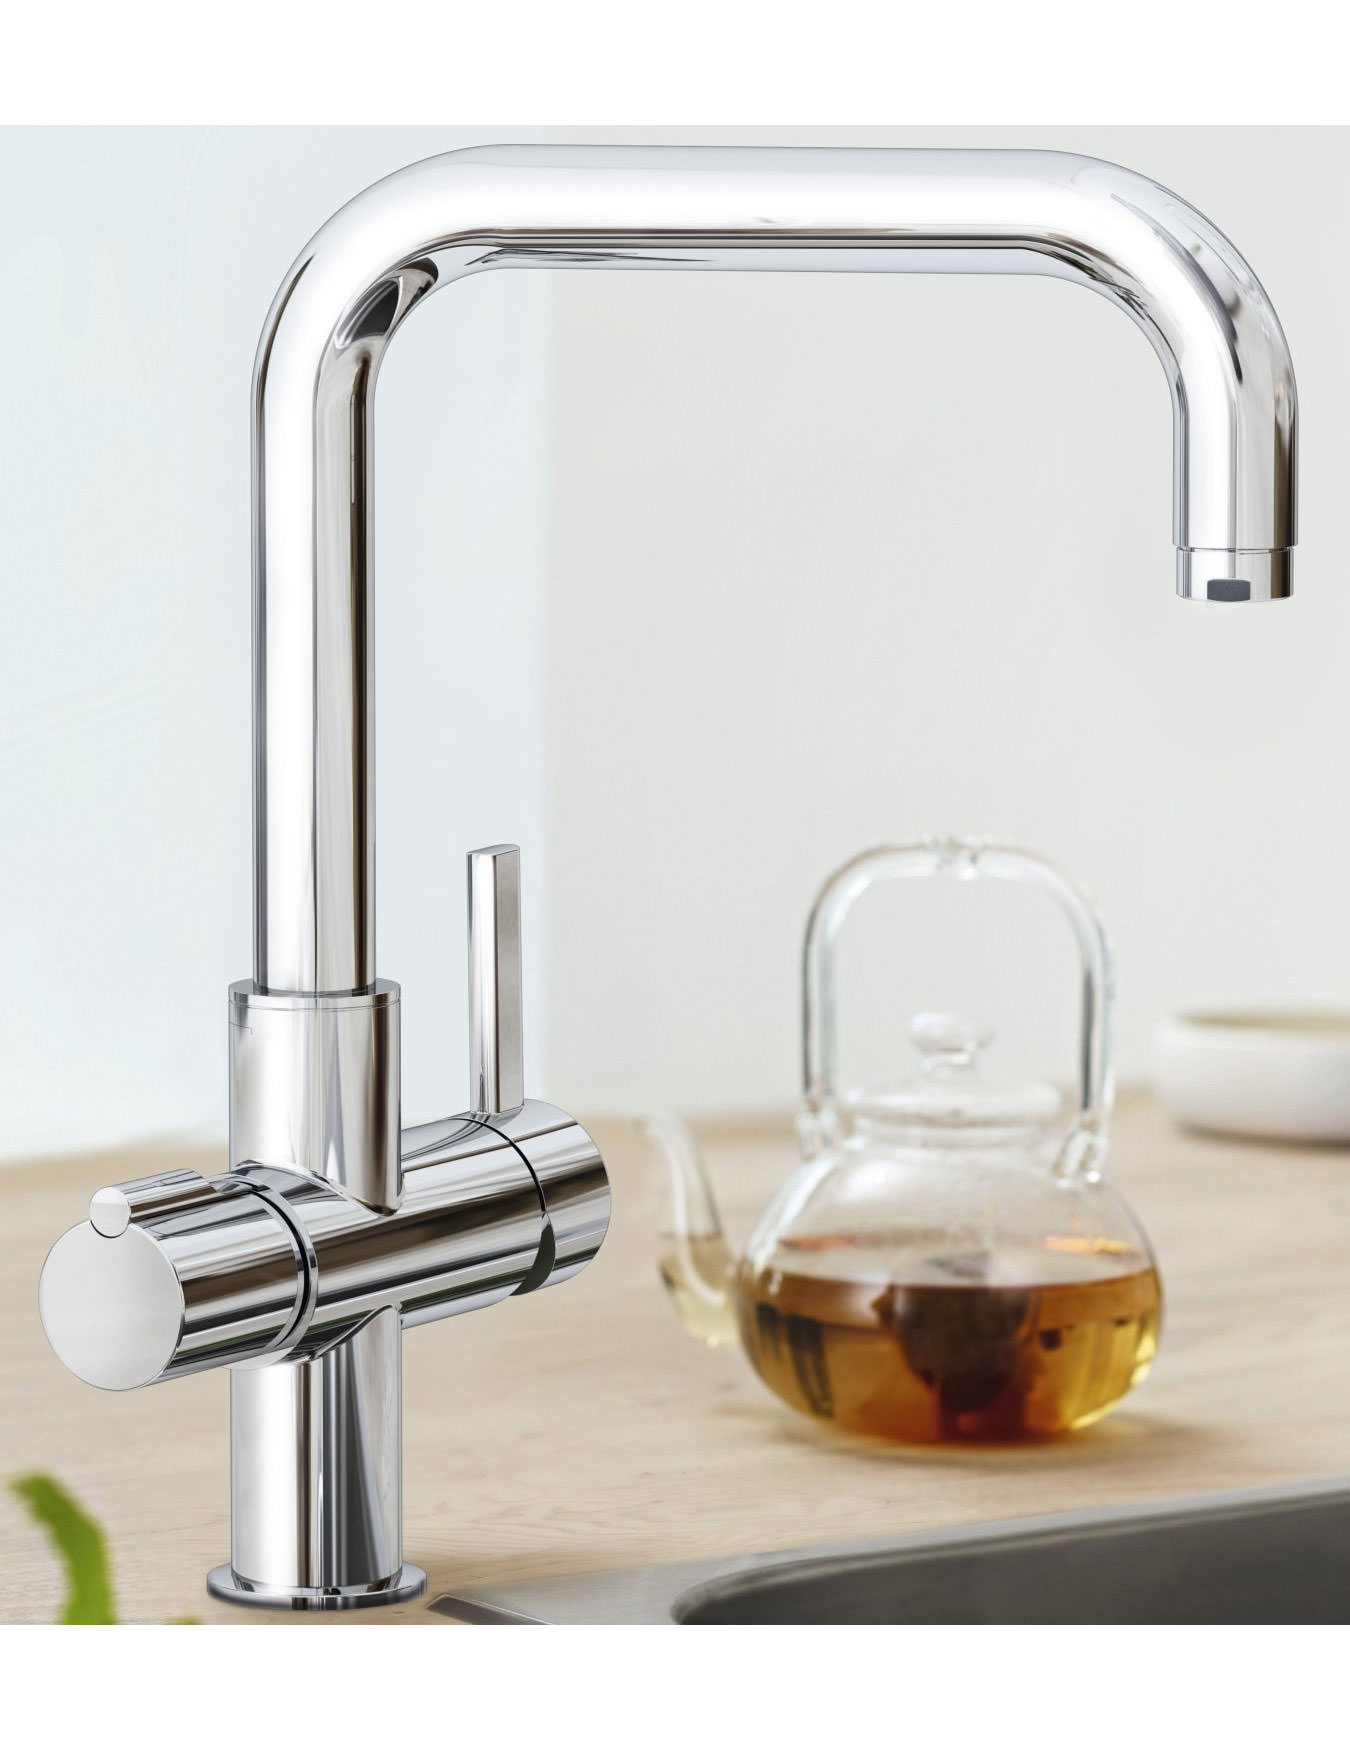 grohe red duo chrome u spout faucet and single boiler 4 litres. Black Bedroom Furniture Sets. Home Design Ideas